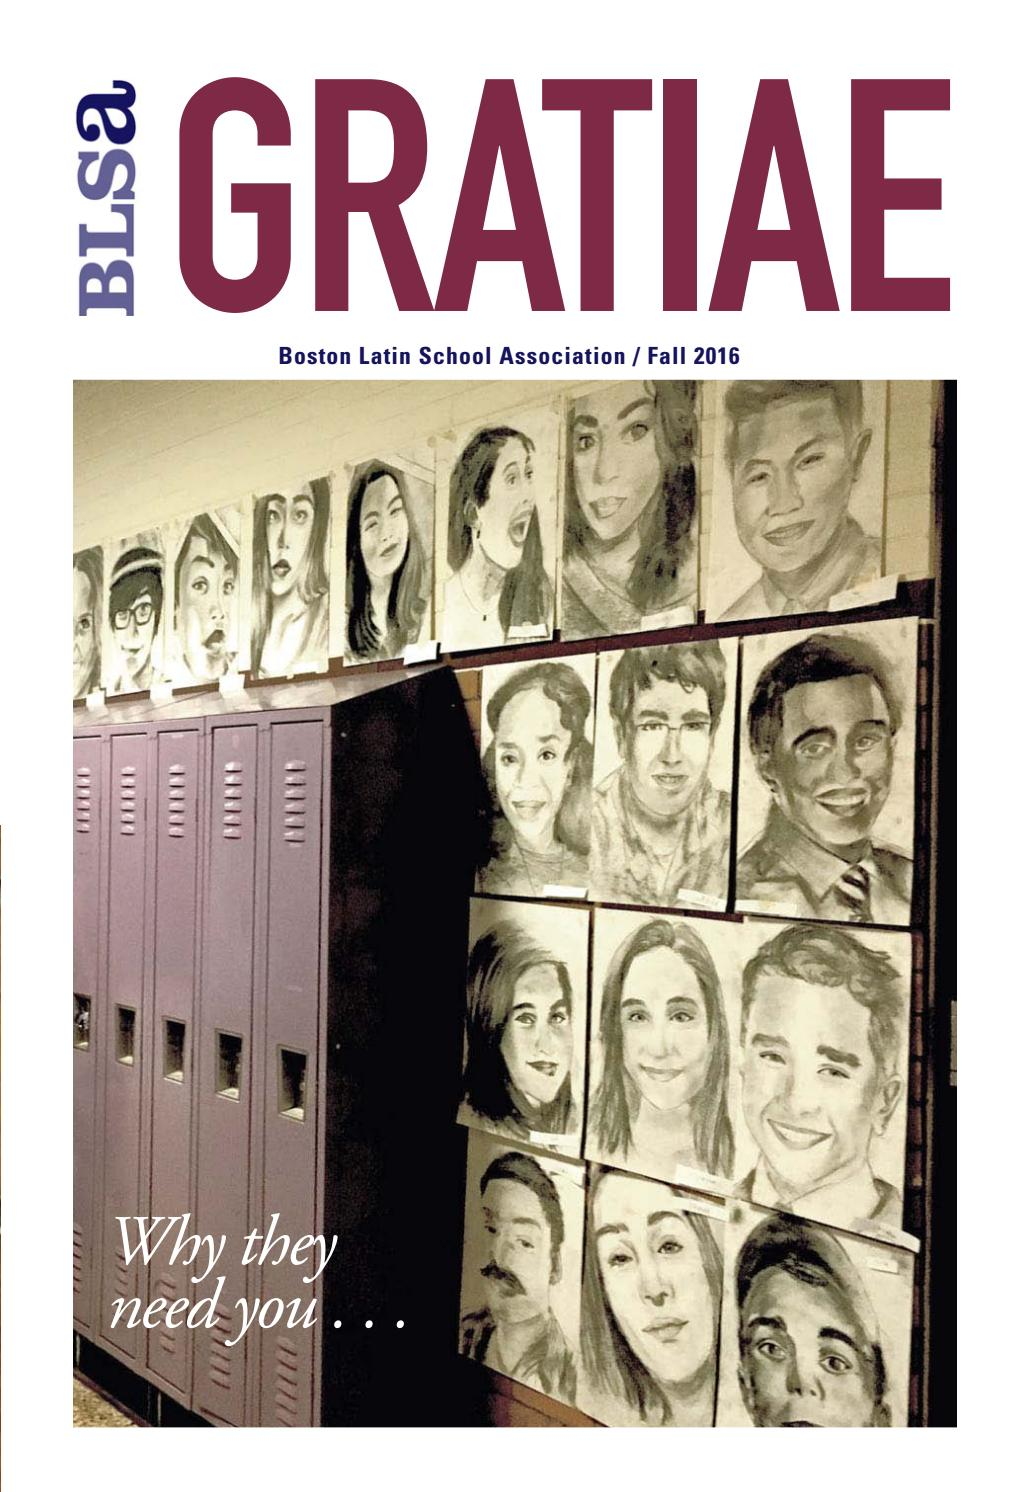 blsa gratiae 2014 by kd emery issuu